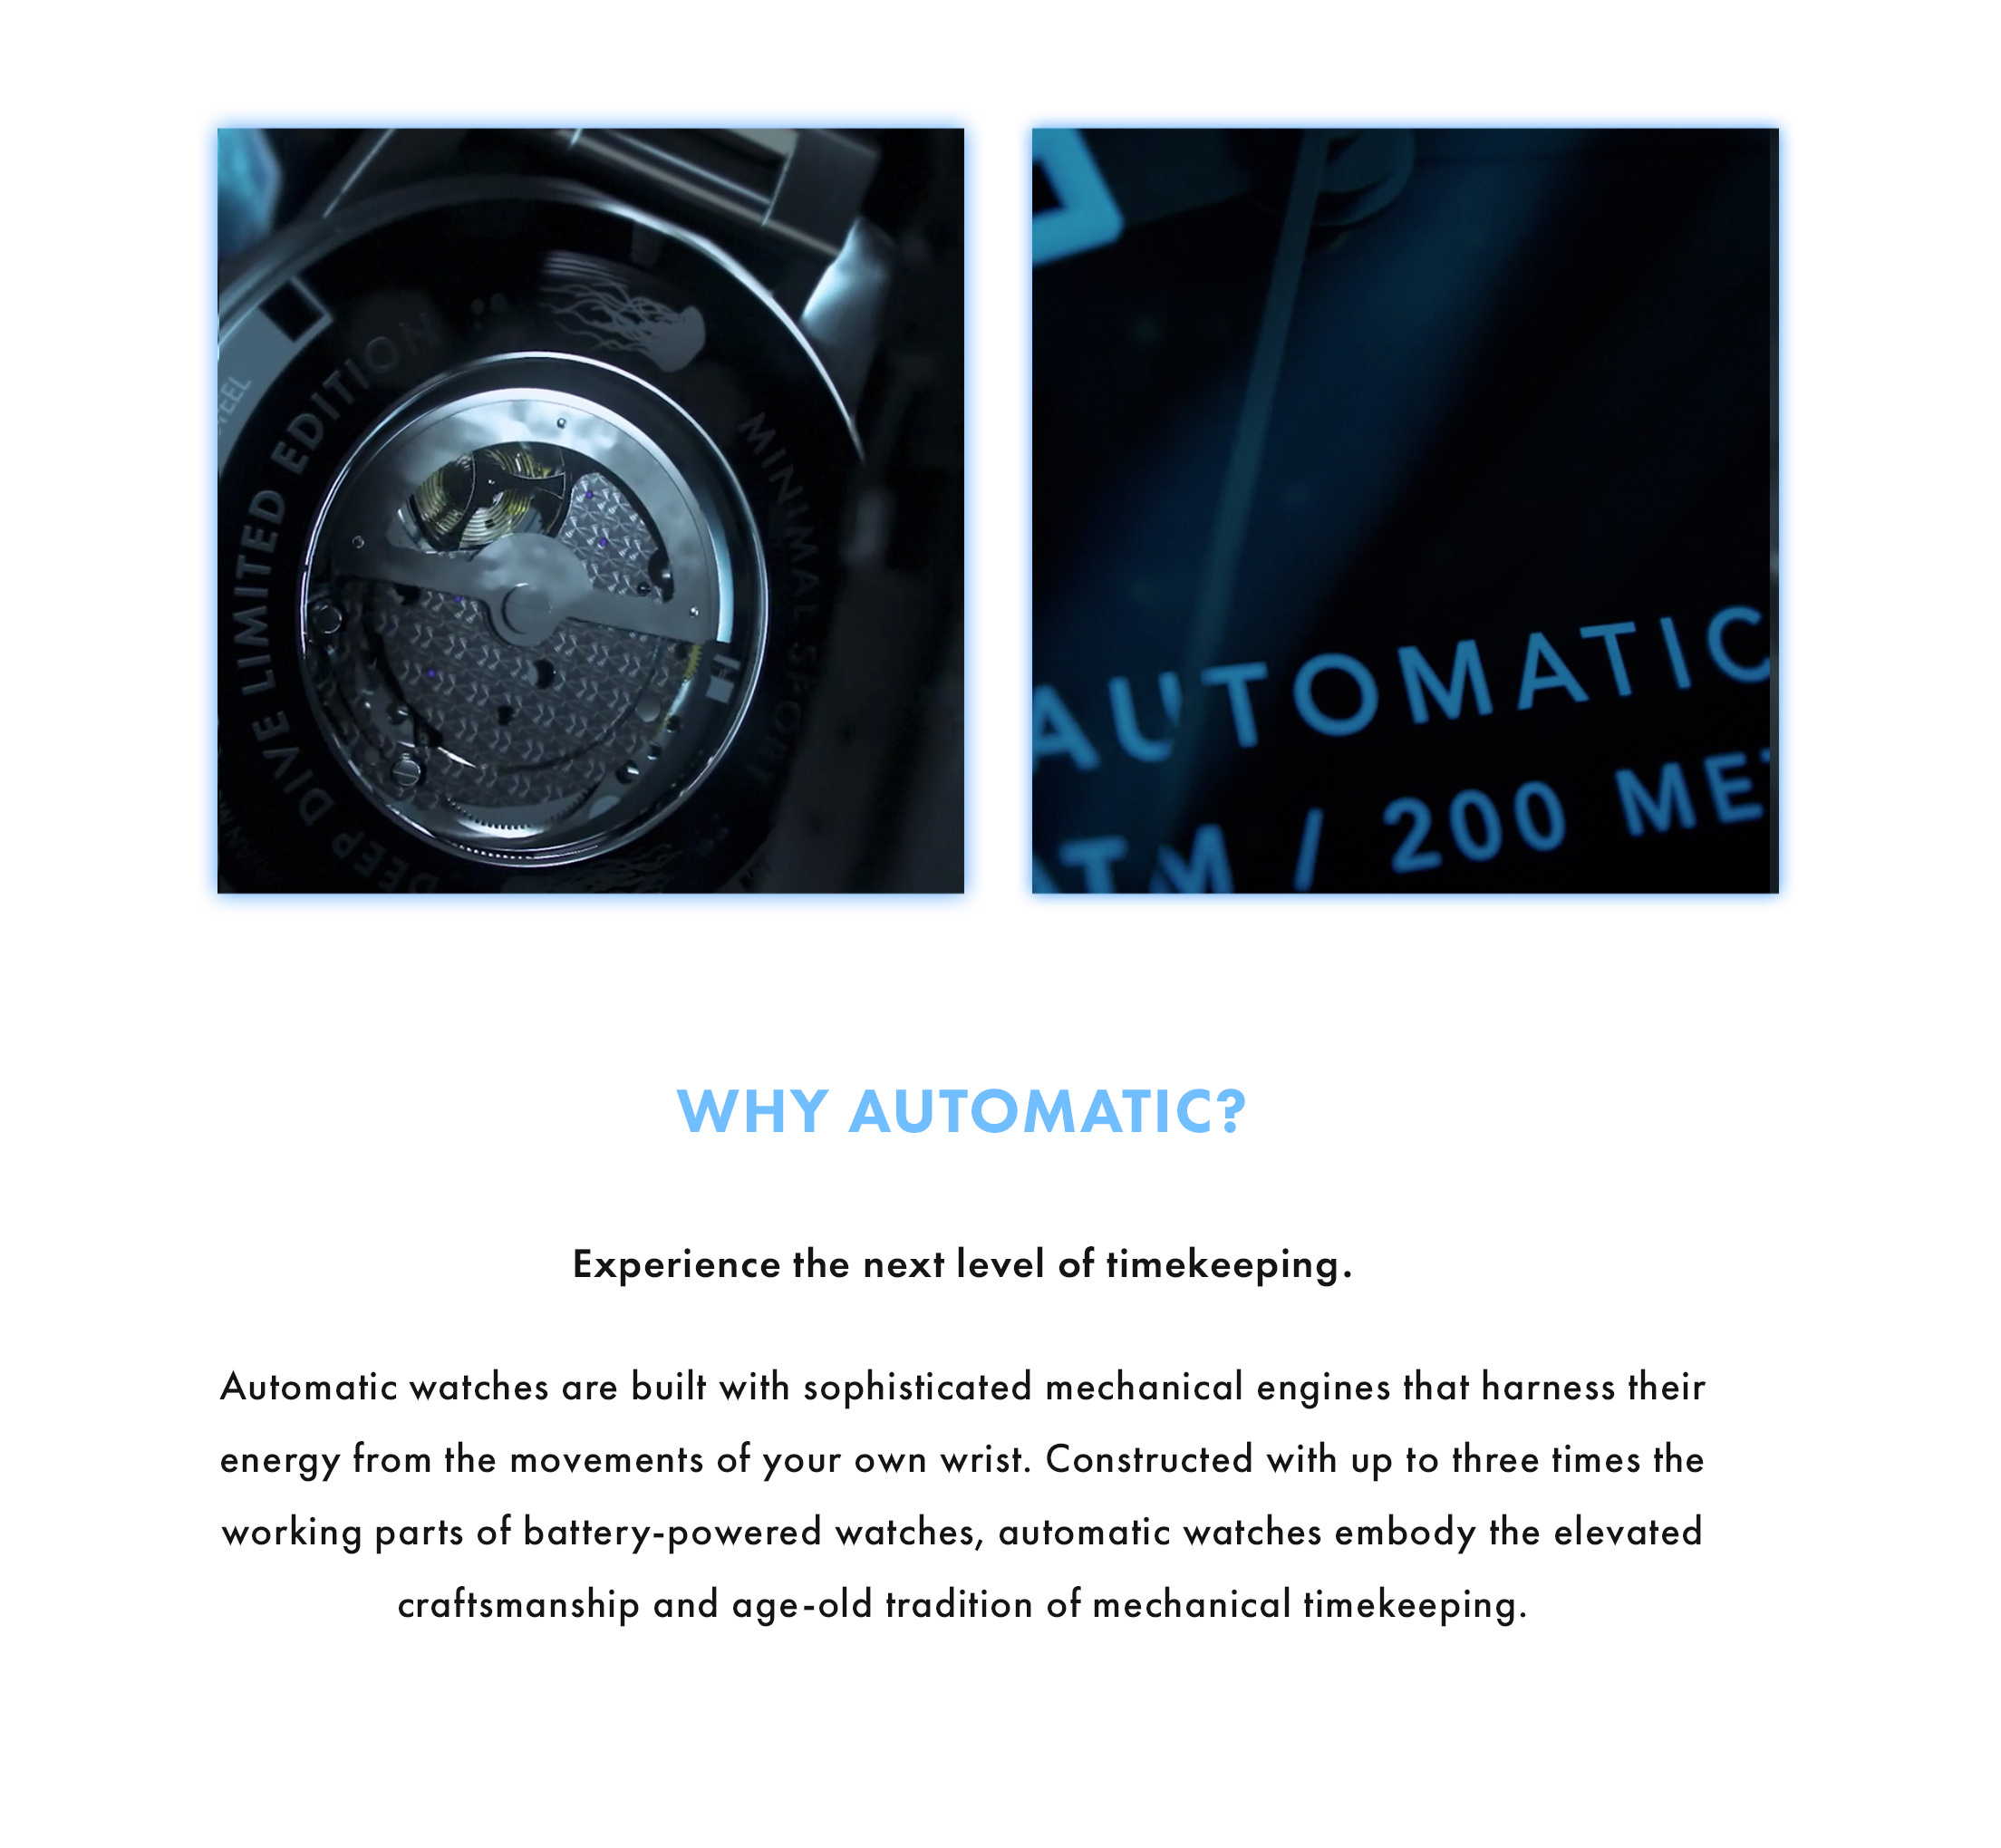 Why Automatic? Experience the next level of timekeeping. Automatic watches are built with sophisticated mechanical engines that harness their energy from the movements of your own wrist. Constructed with up to three times the working parts of battery-powered watches, automatic watches embody the elevated craftsmanship and age-old tradition of mechanical timekeeping.